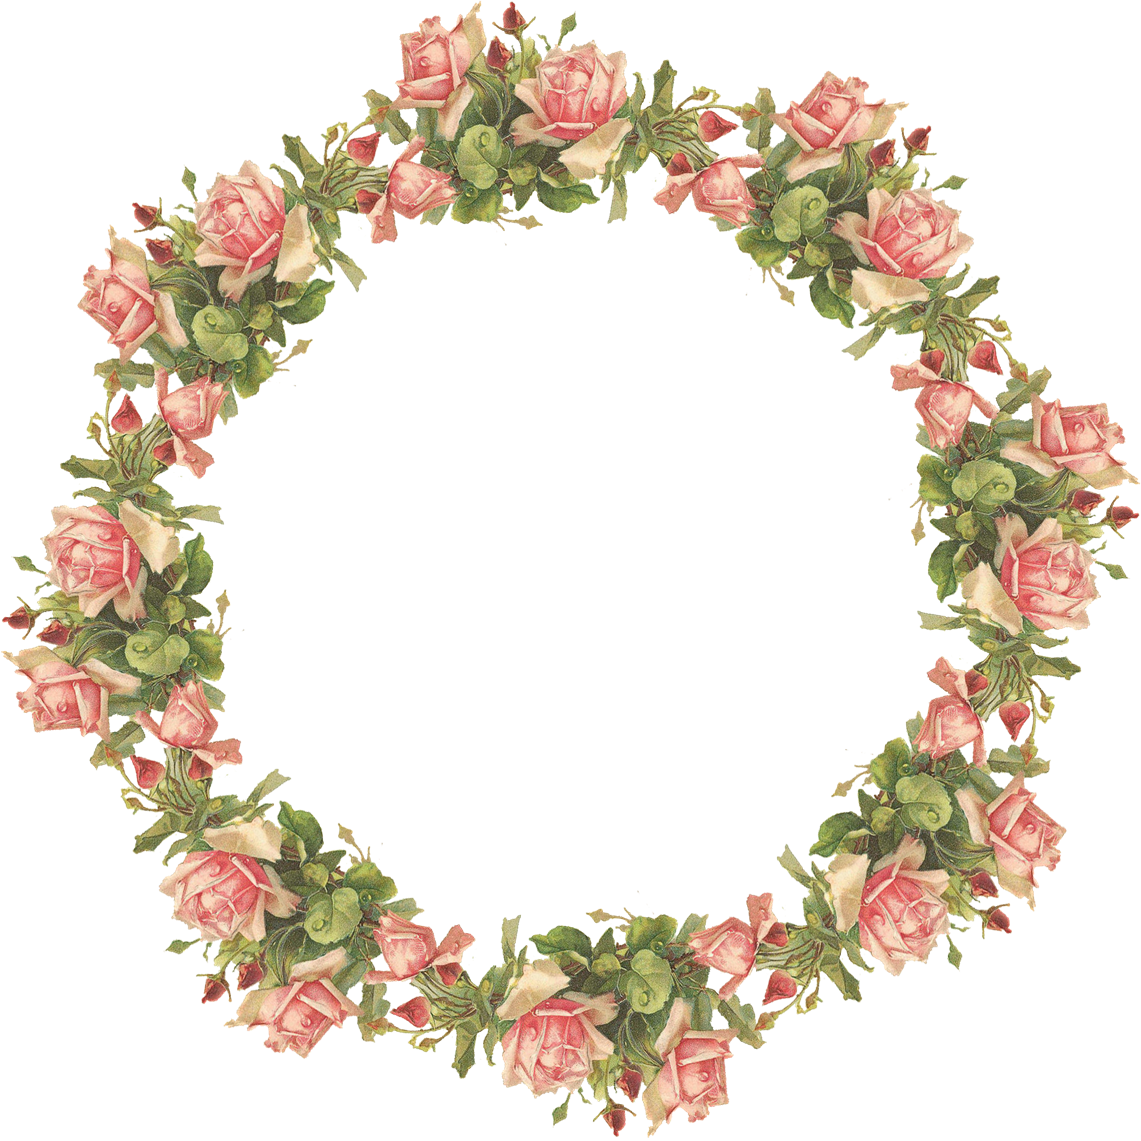 Clipart roses wreath. Related image transparent floral